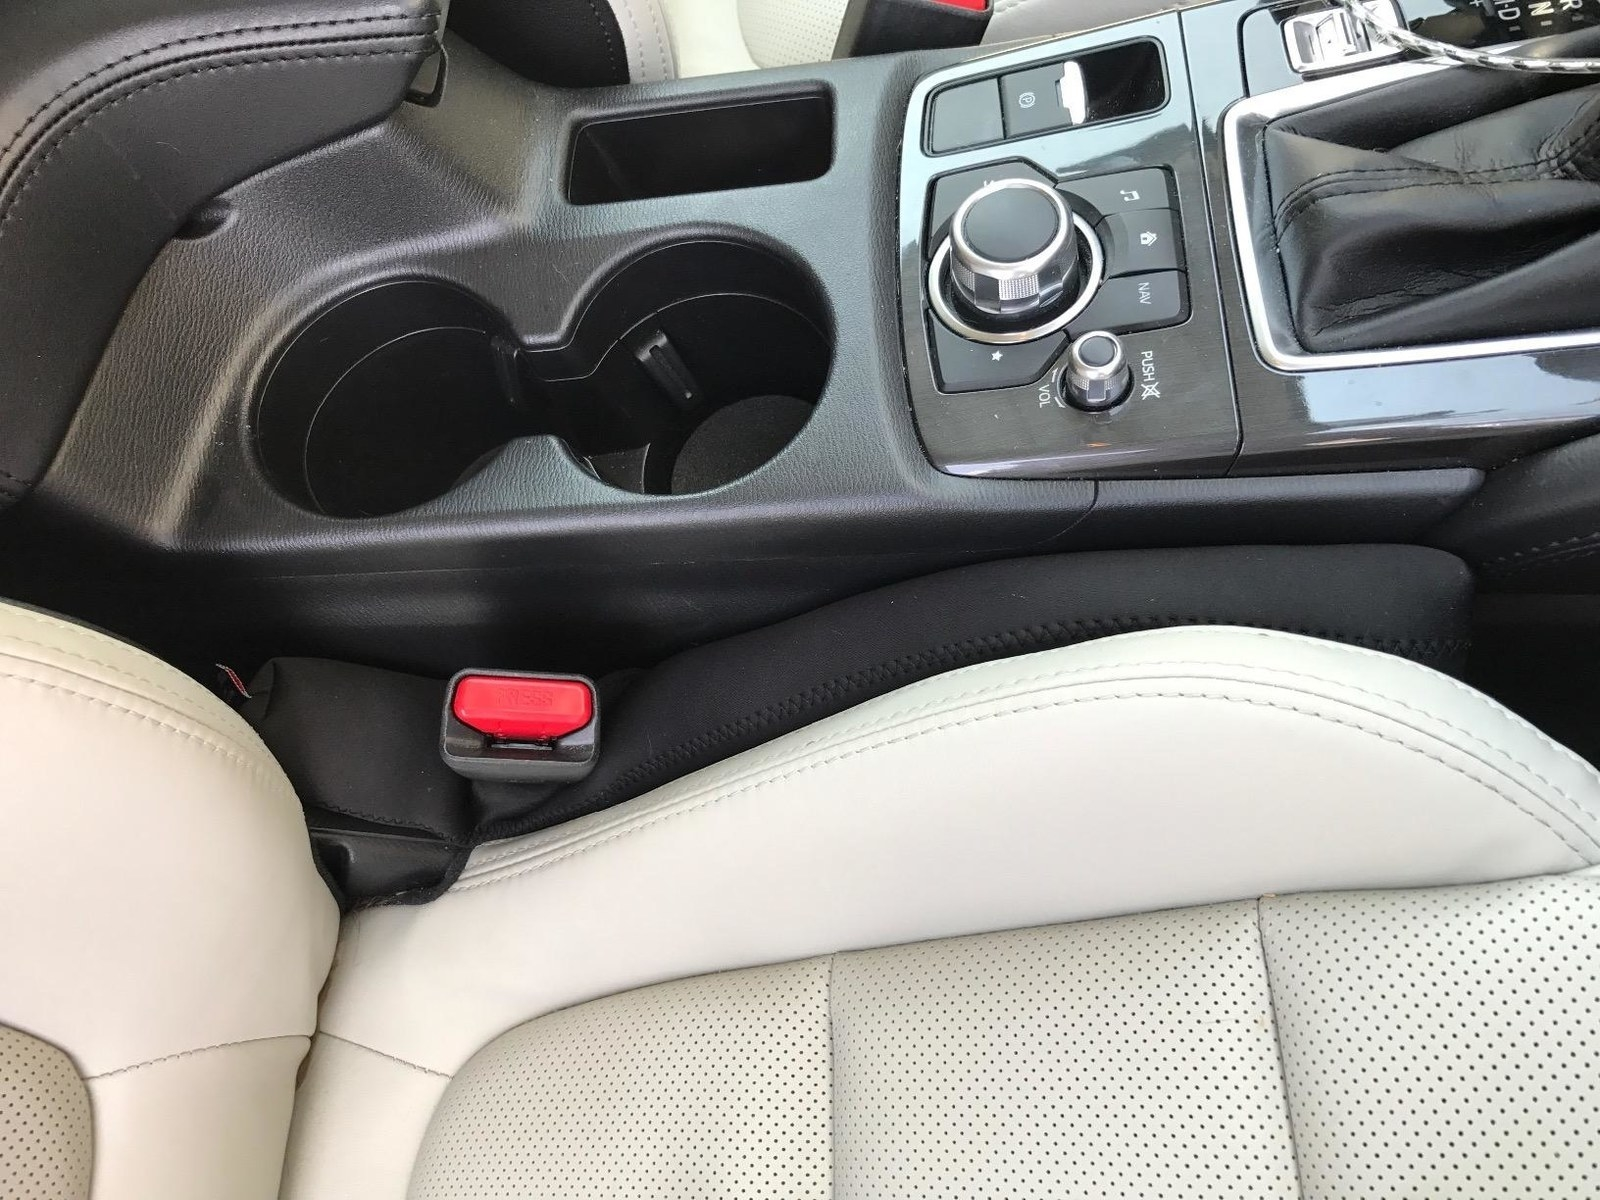 The seat gap filler wedges between a car seat and console